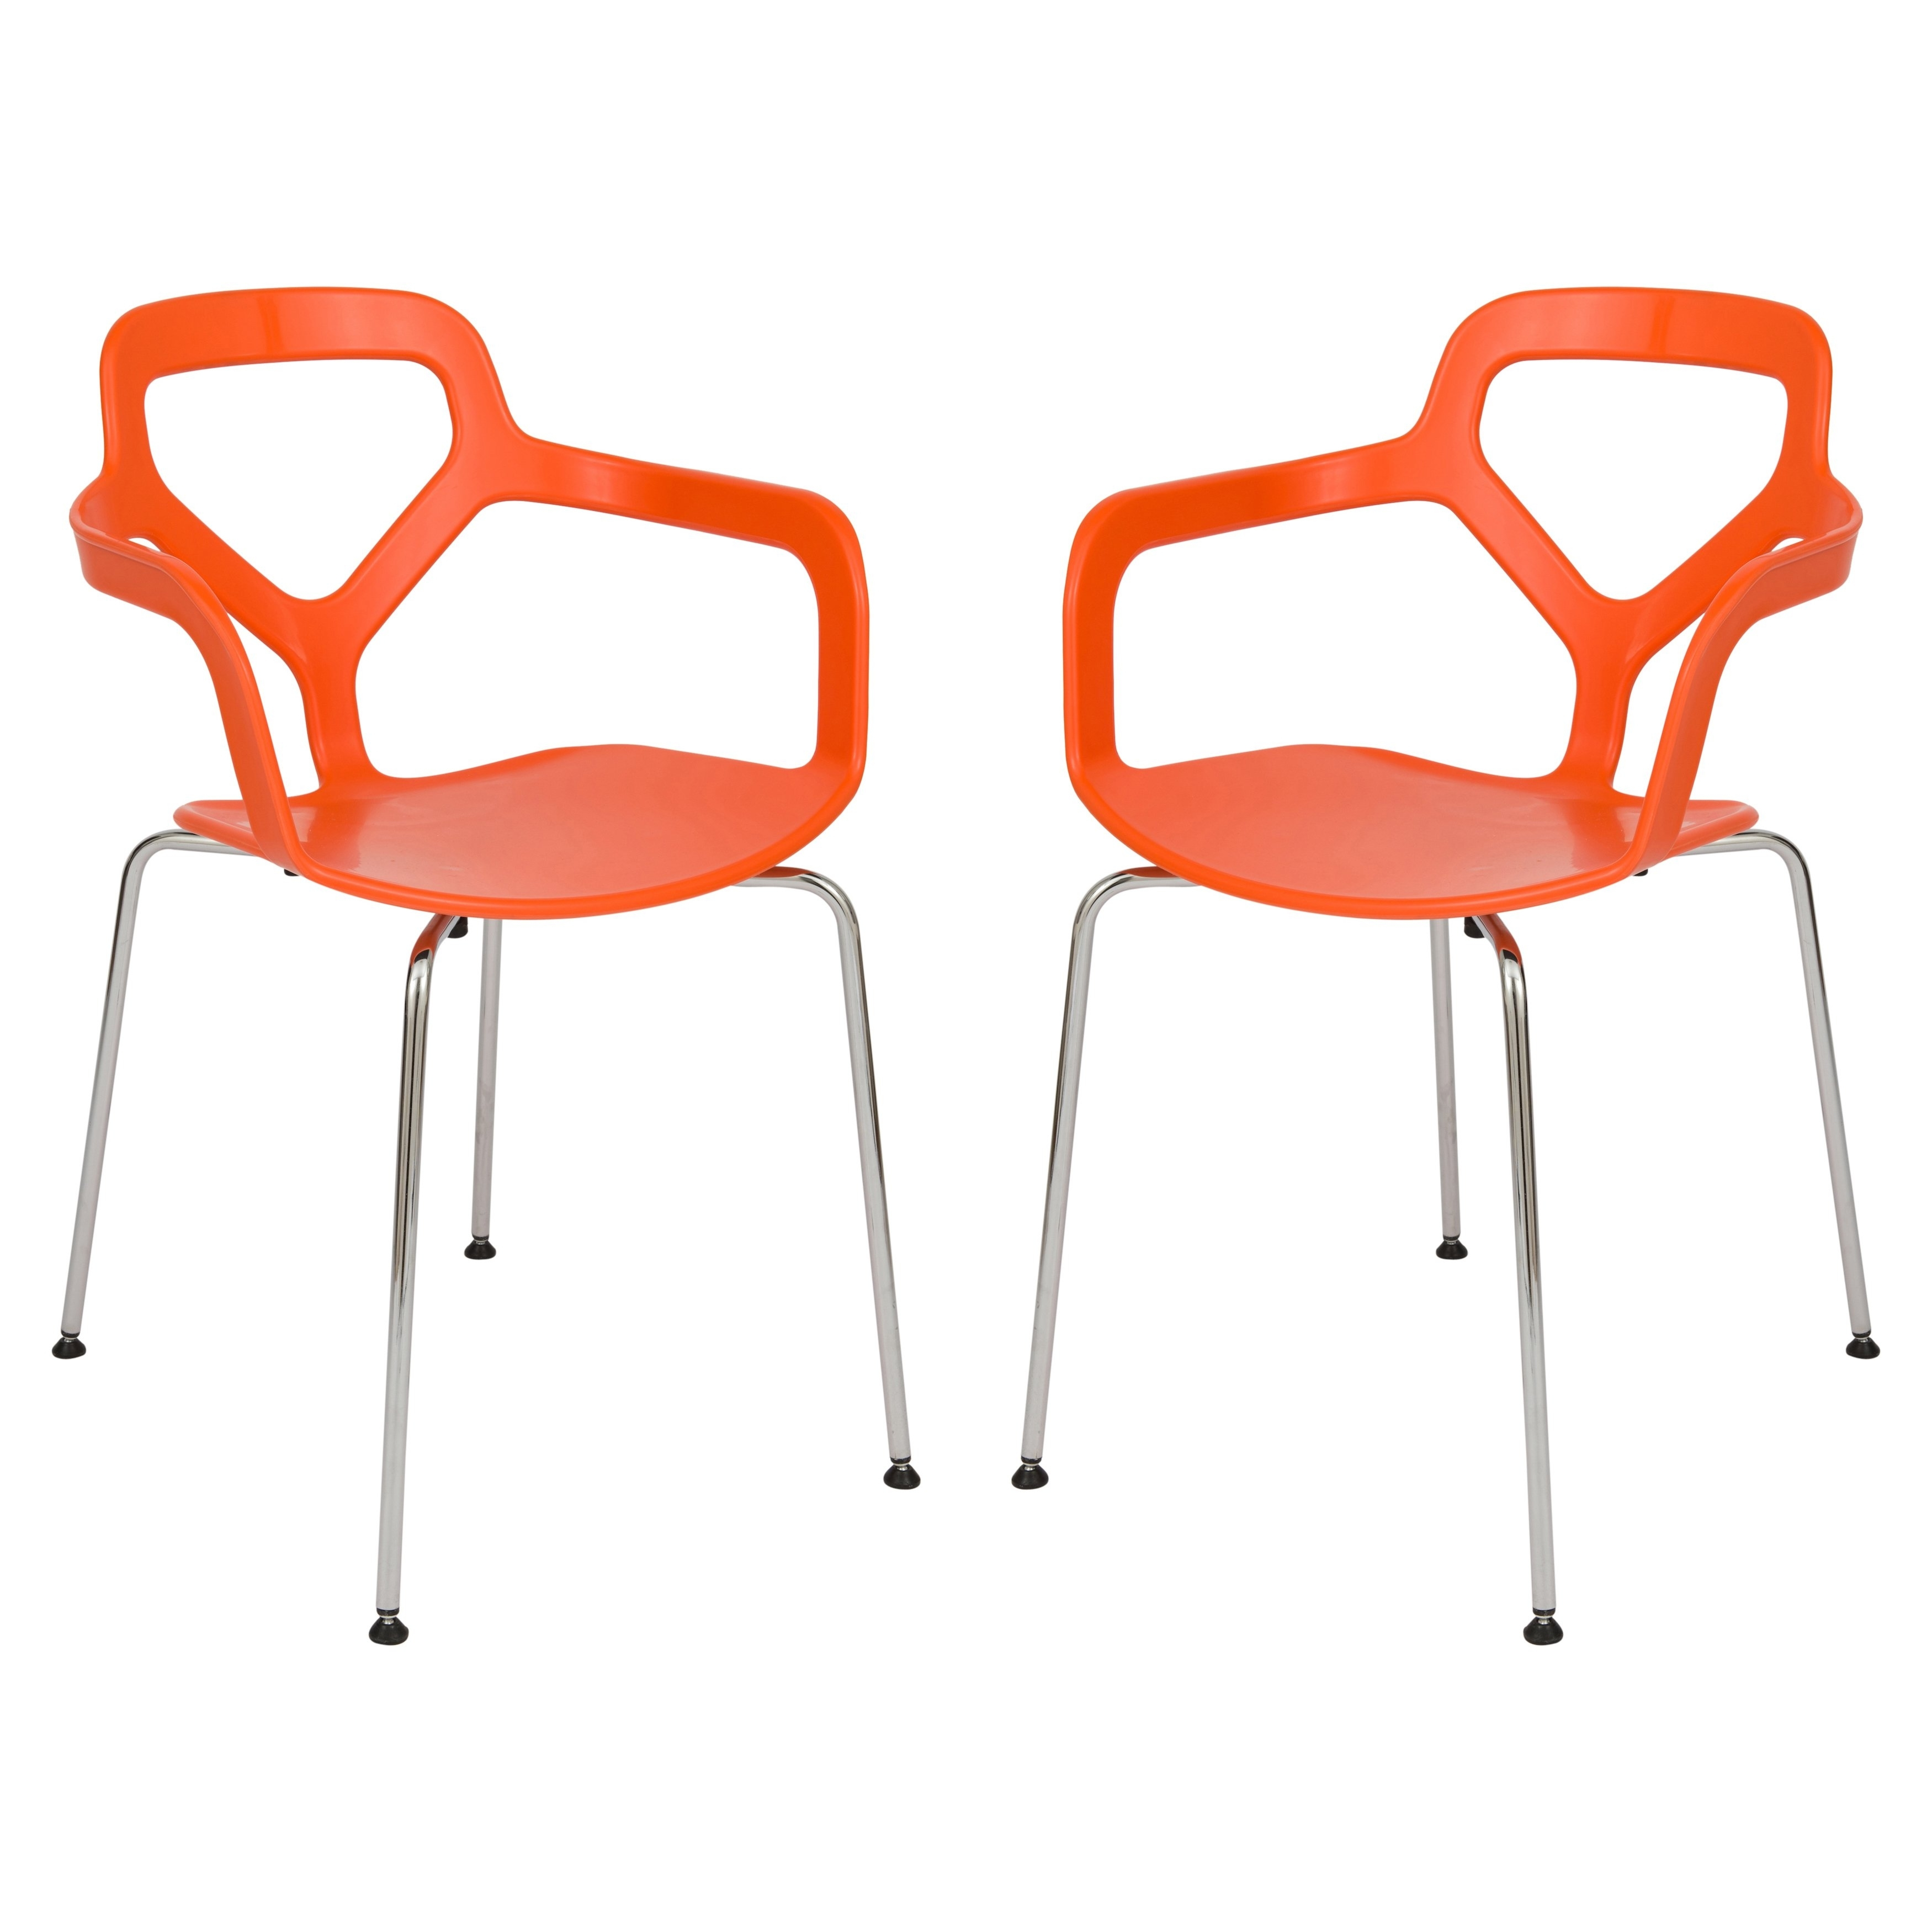 Inspiration about Latest Mod Ii Arm Chairs Regarding Leisuremod Modern Carney Orange Arm Chair W/ Chrome Legs, Set Of 2 (#8 of 20)